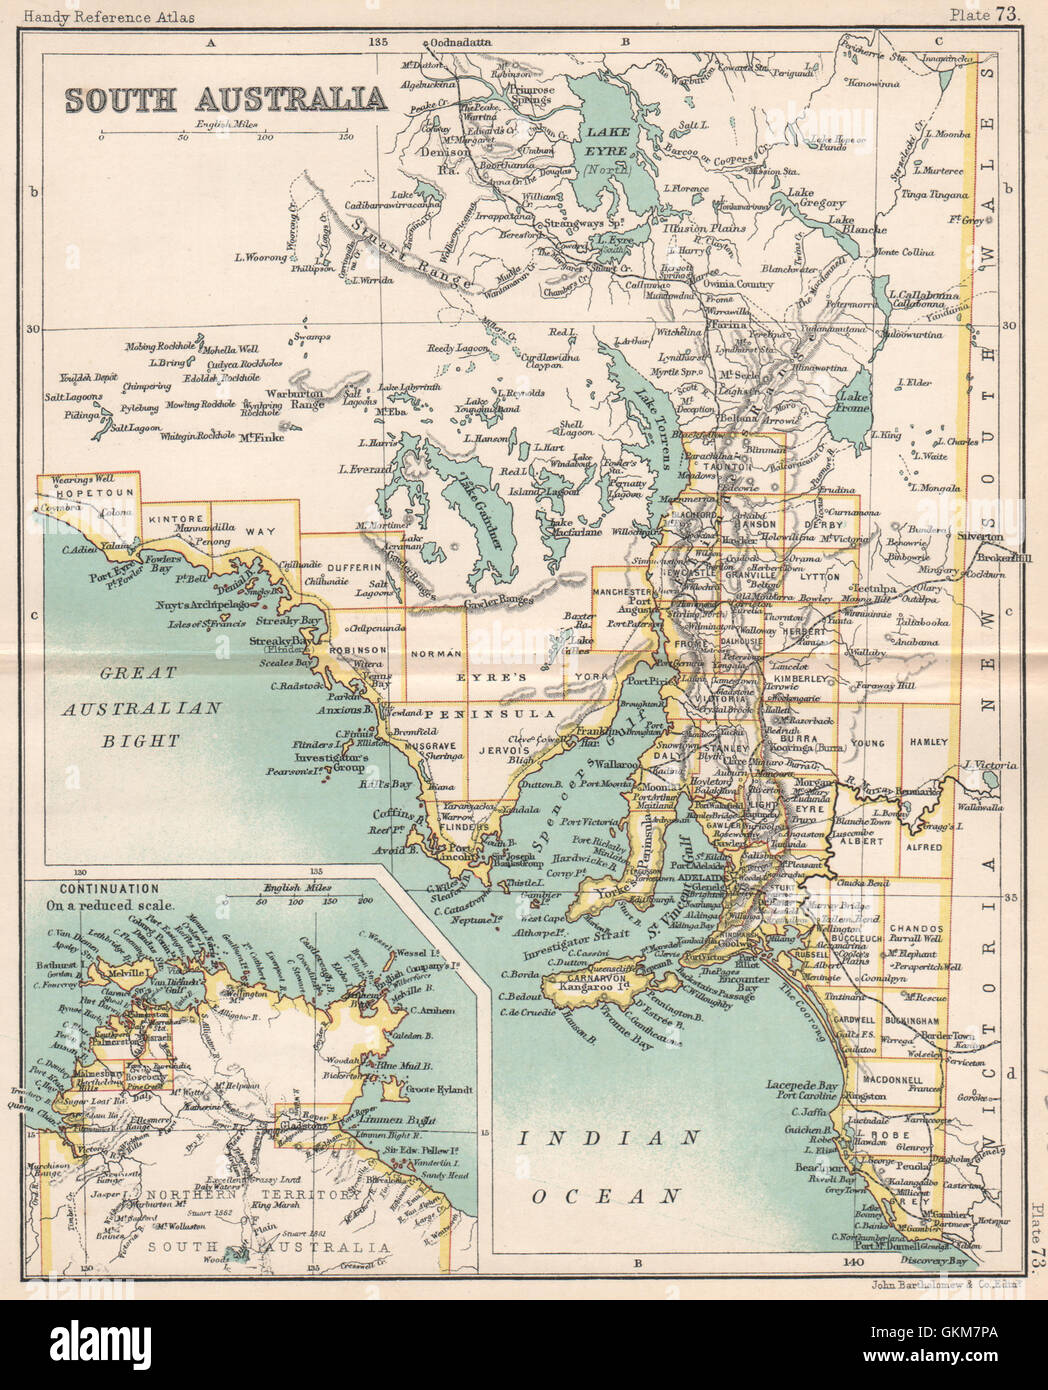 Map Of South Australia And Northern Territory.South Australia State Map Northern Territory Bartholomew 1904